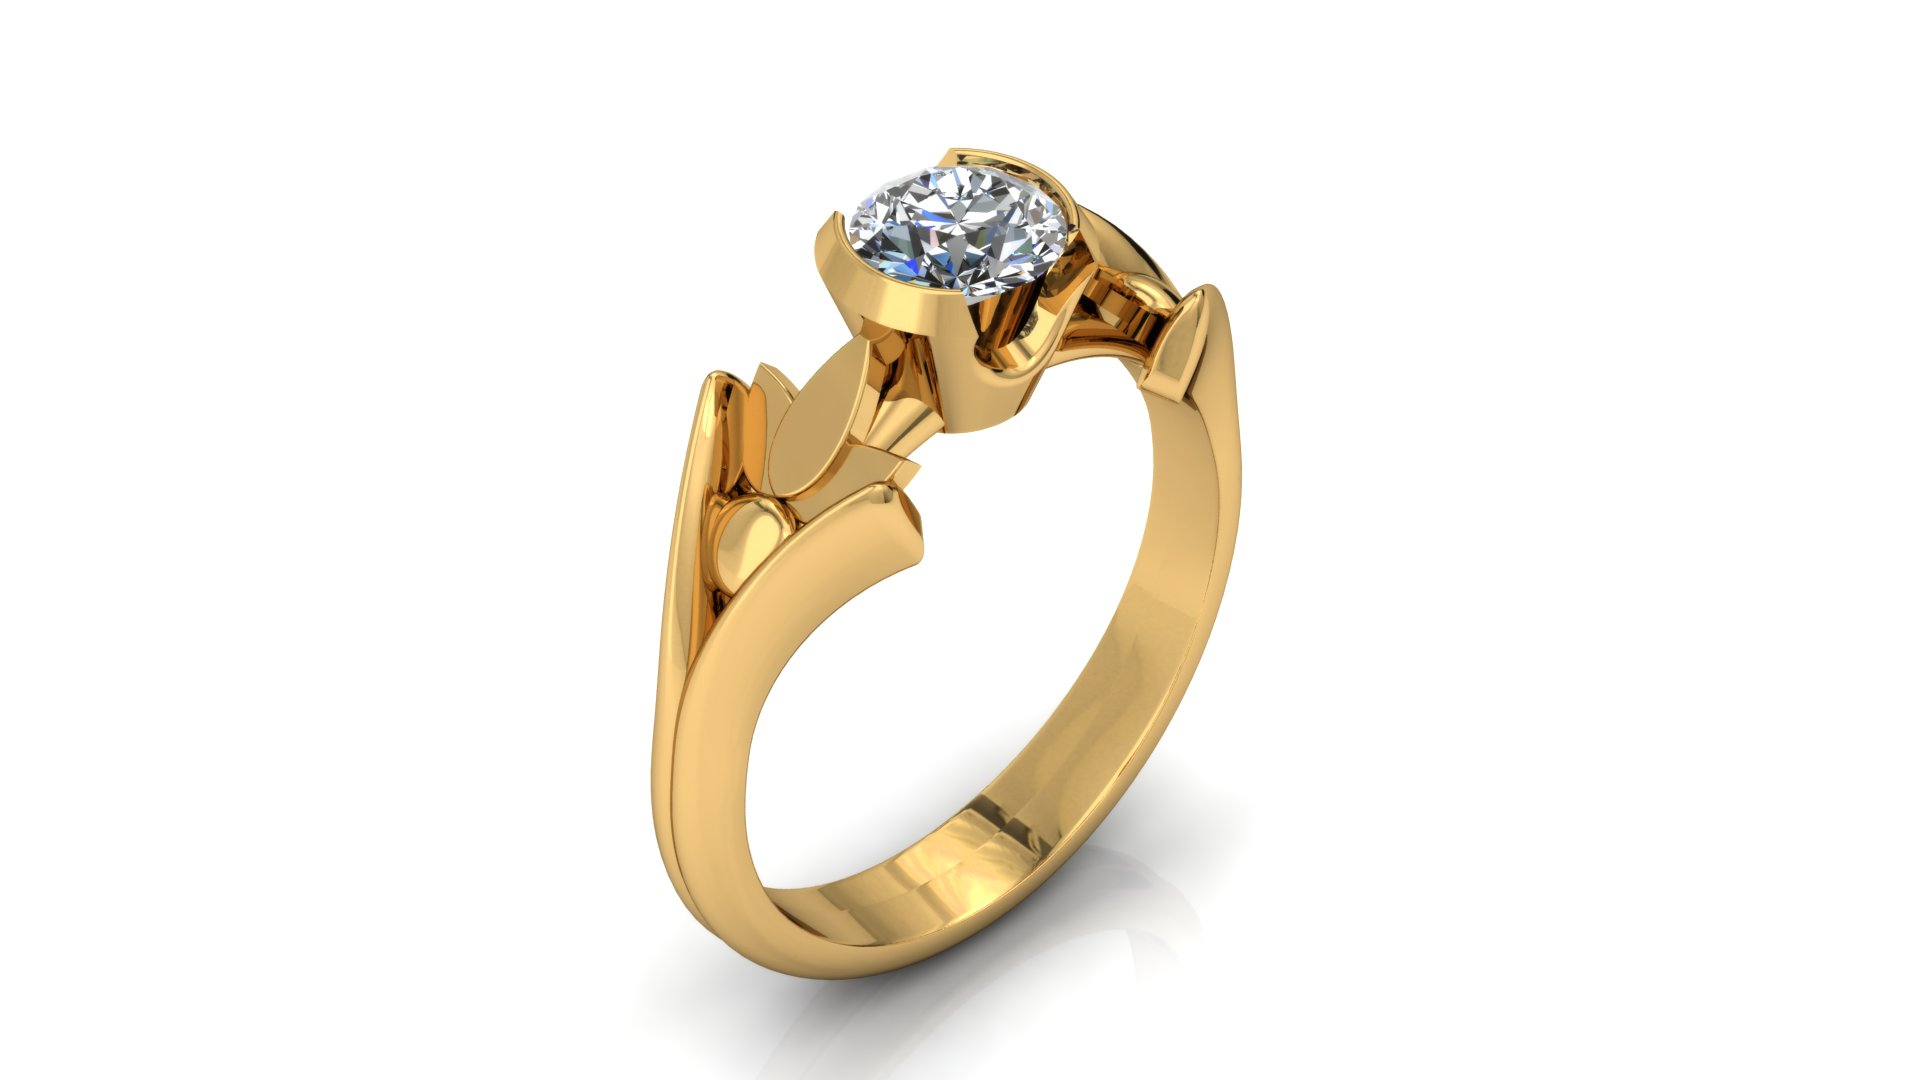 Custom Engagement Rings | TheGoldsmiths LTD. of Reading, PA